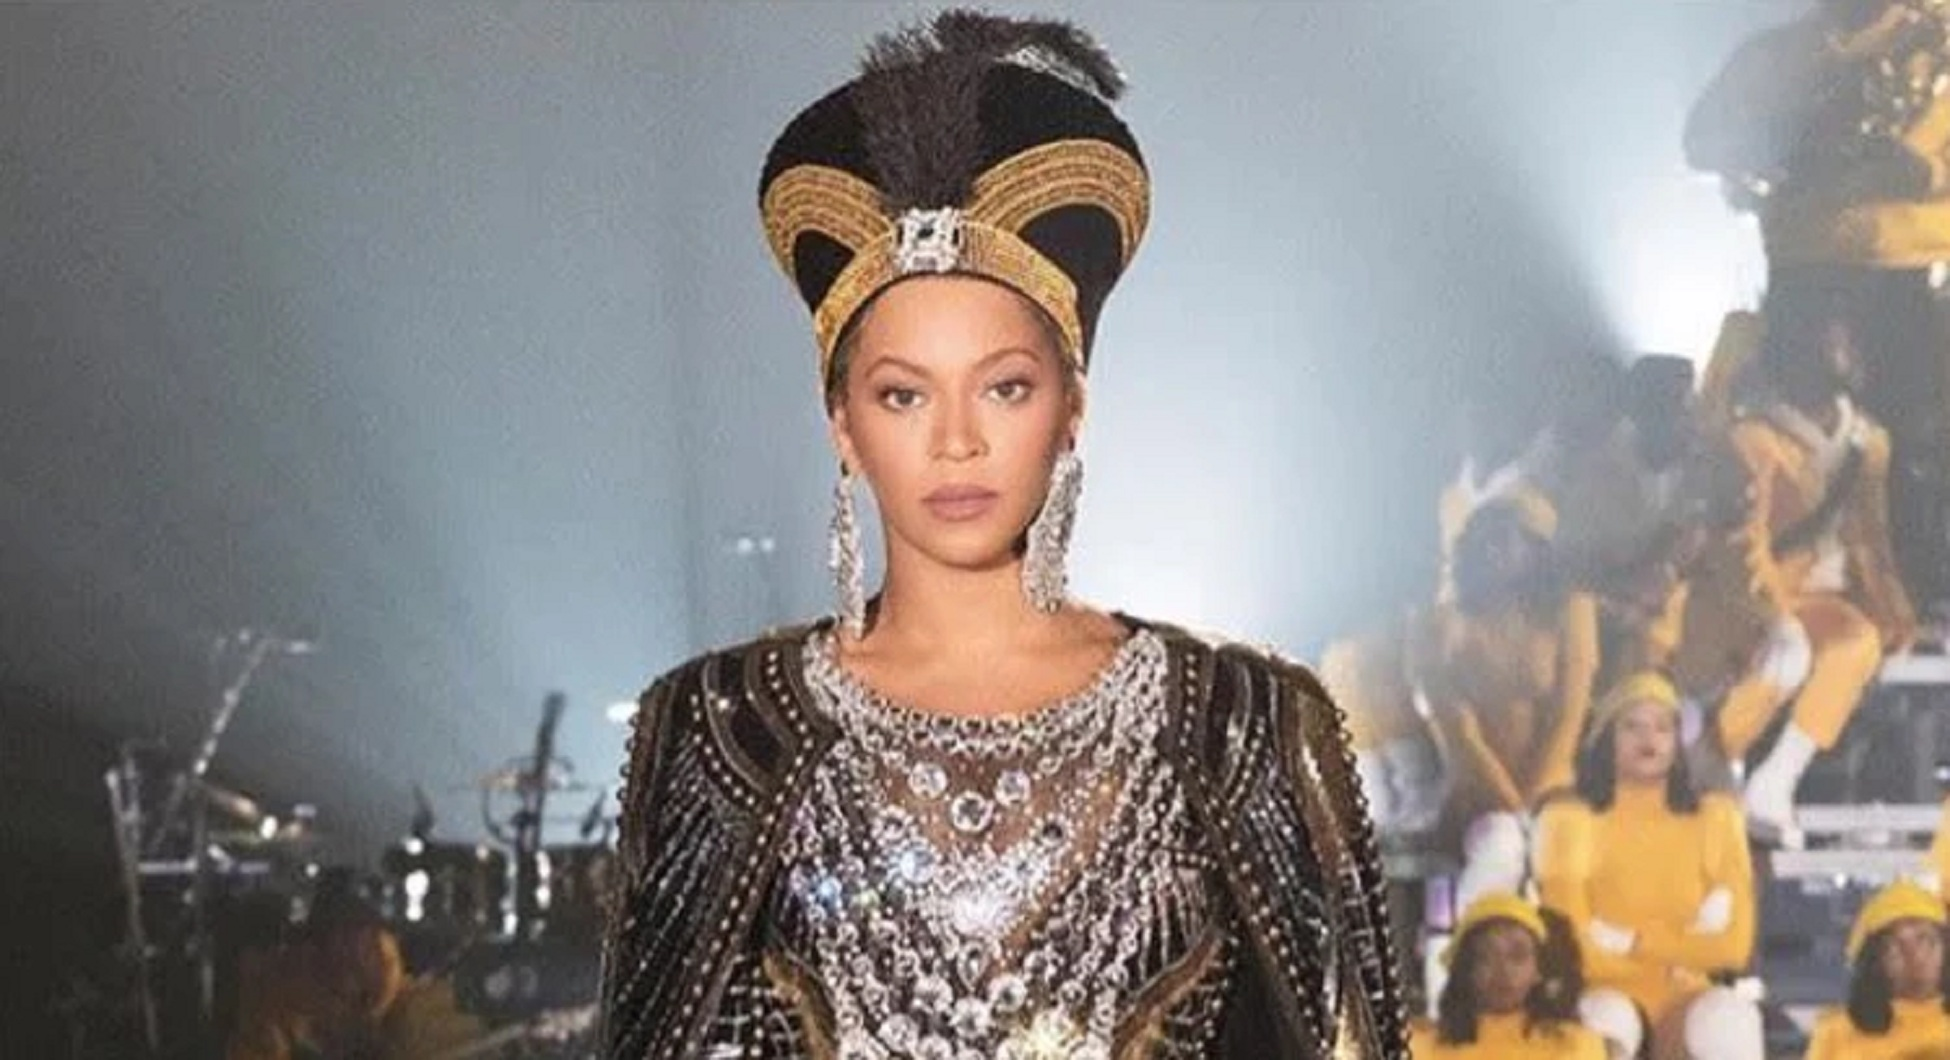 'Homecoming': Watch The Trailer For Beyonce's Stunning New Netflix Documentary